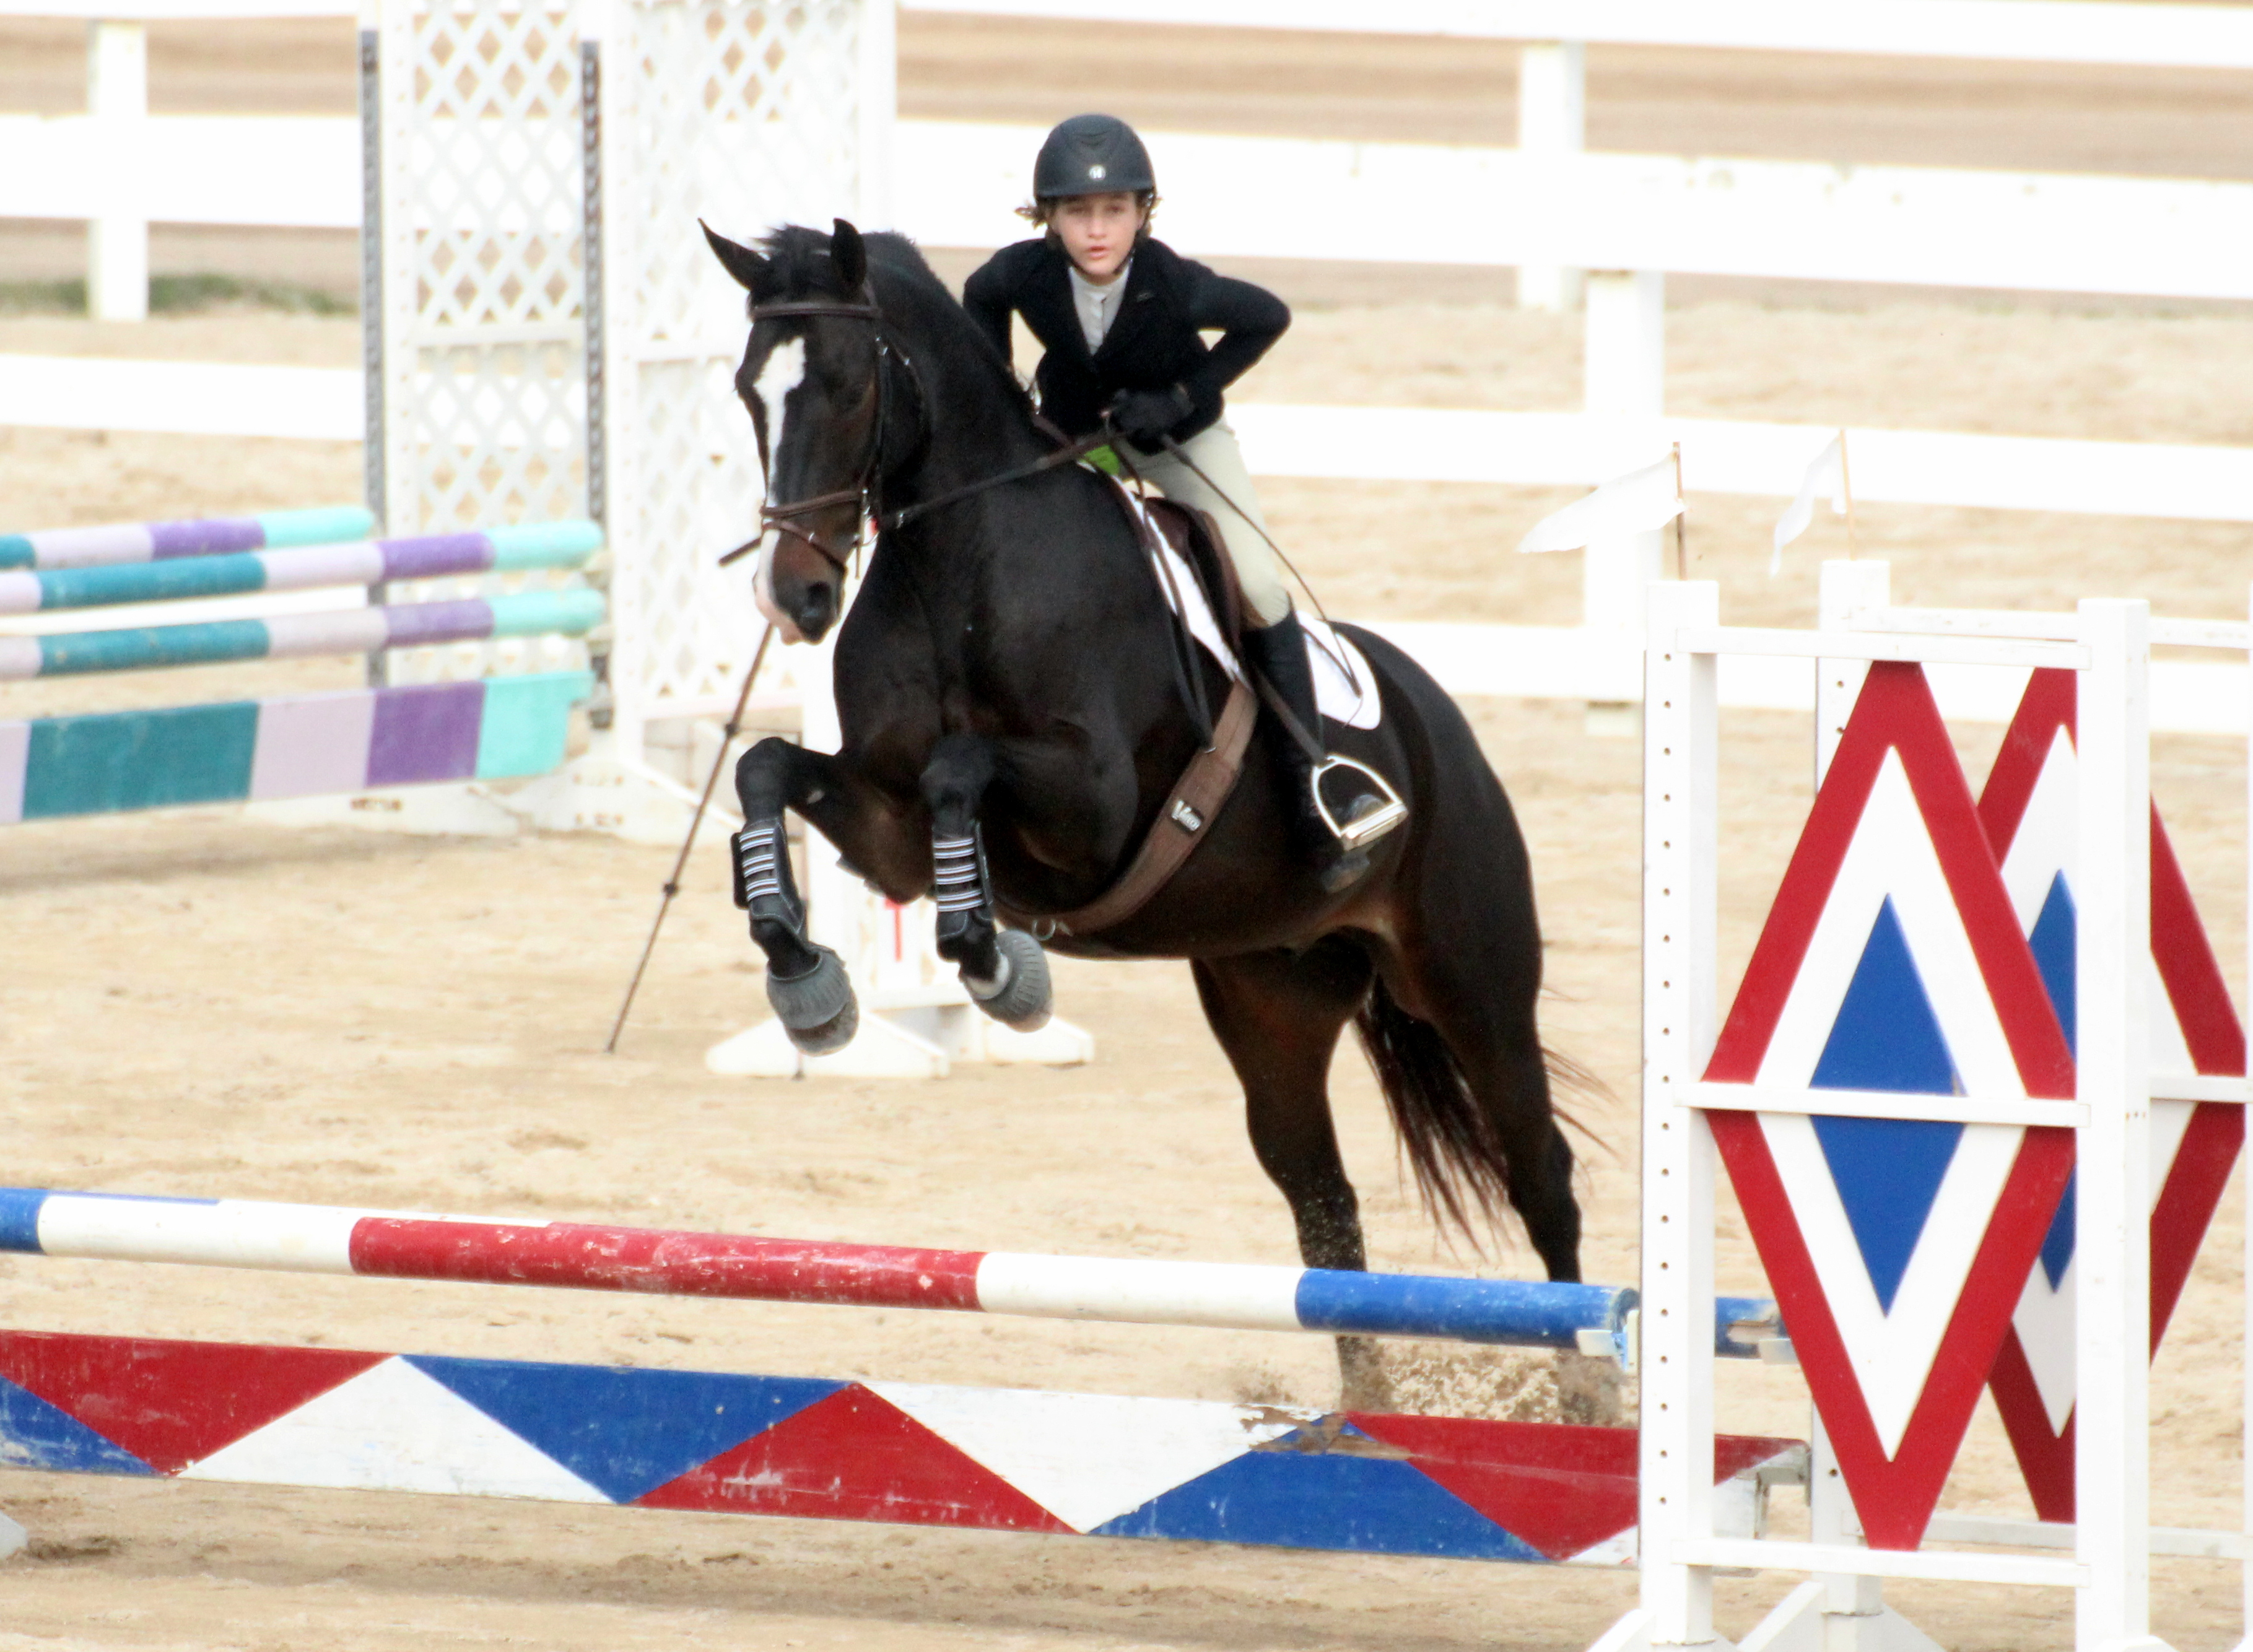 Bermuda Riders Turn in Strong FEI Provisional Results (Equestrian Events)